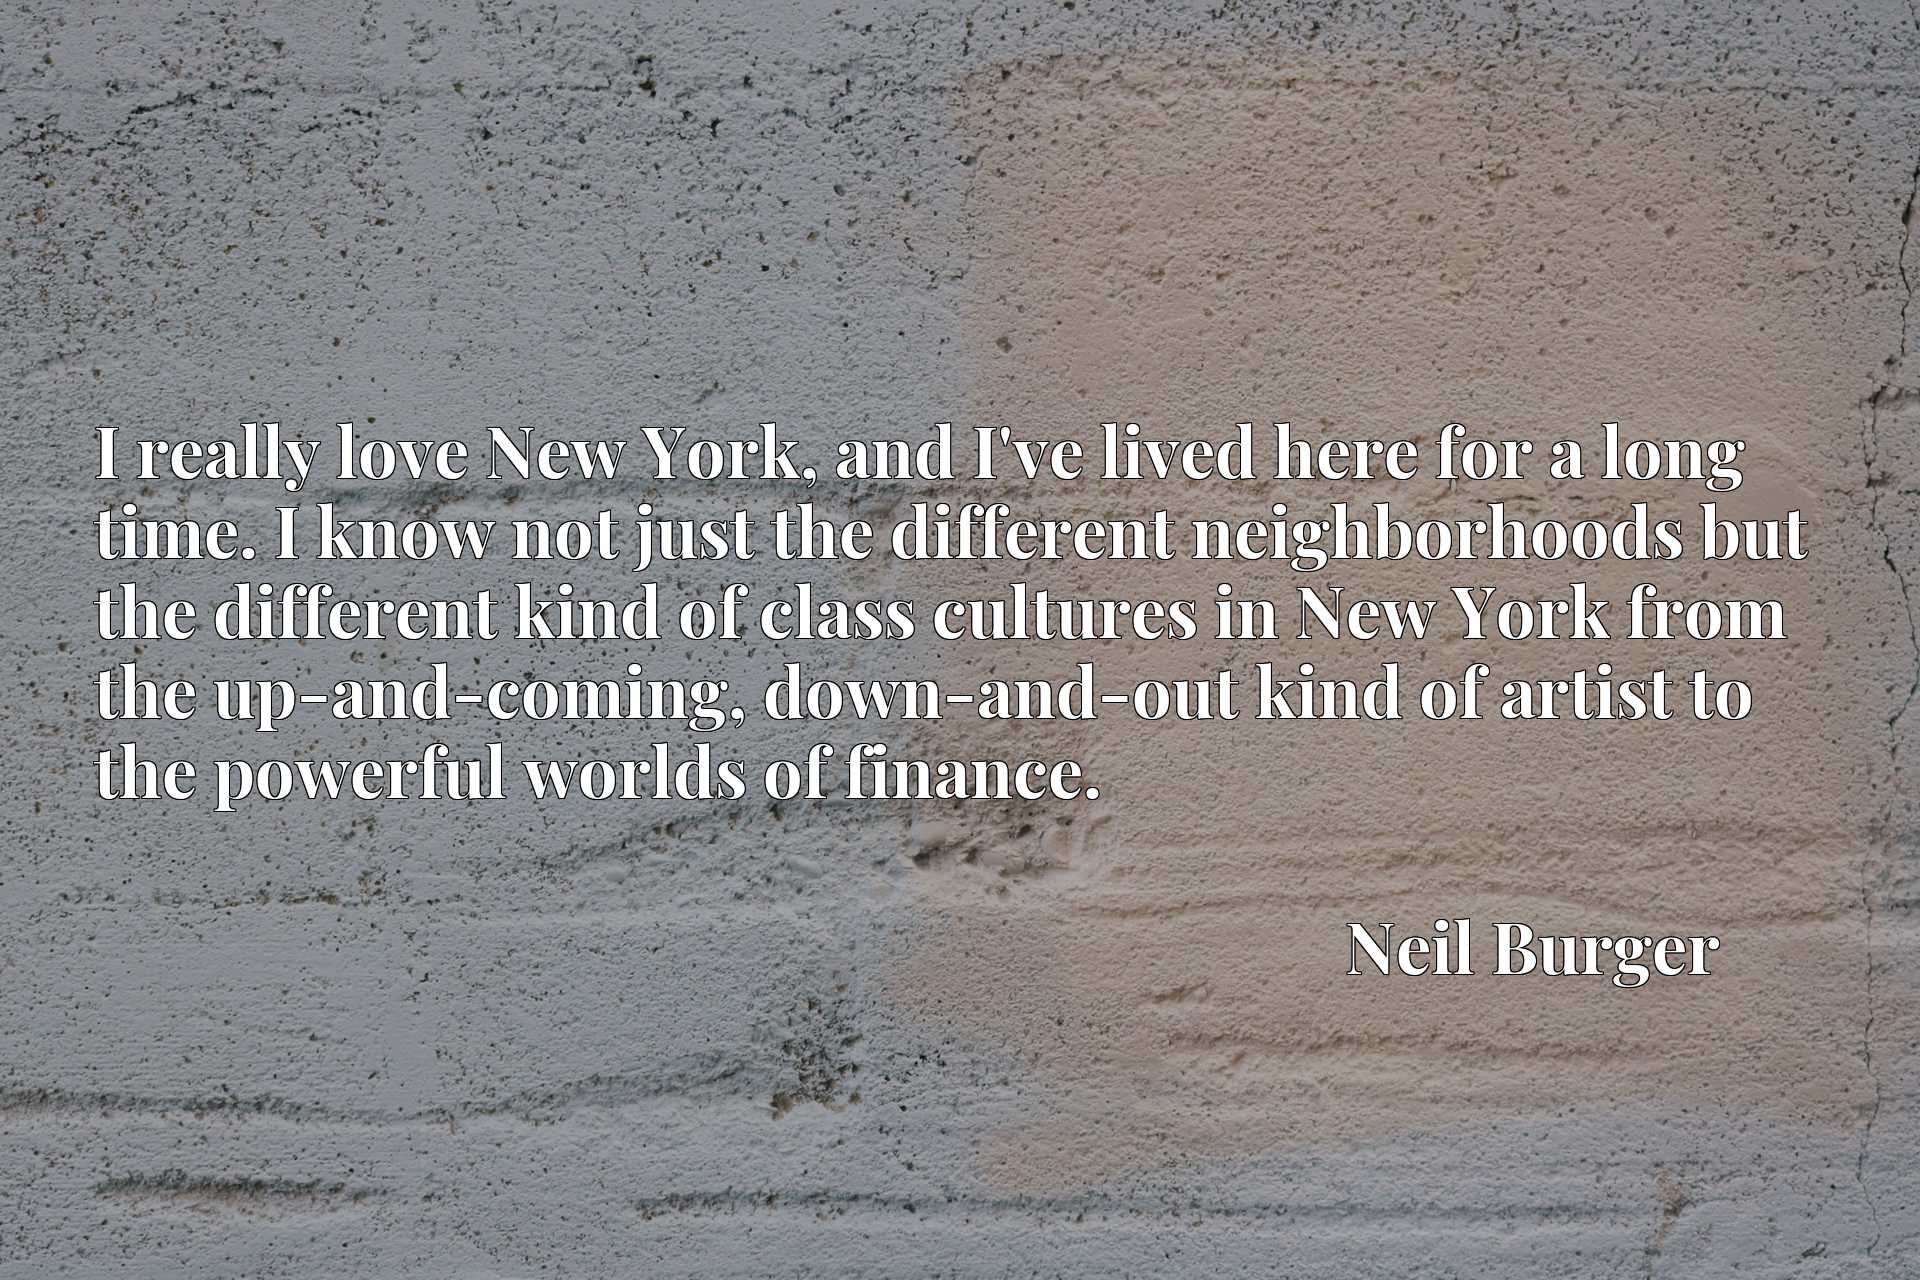 I really love New York, and I've lived here for a long time. I know not just the different neighborhoods but the different kind of class cultures in New York from the up-and-coming, down-and-out kind of artist to the powerful worlds of finance.